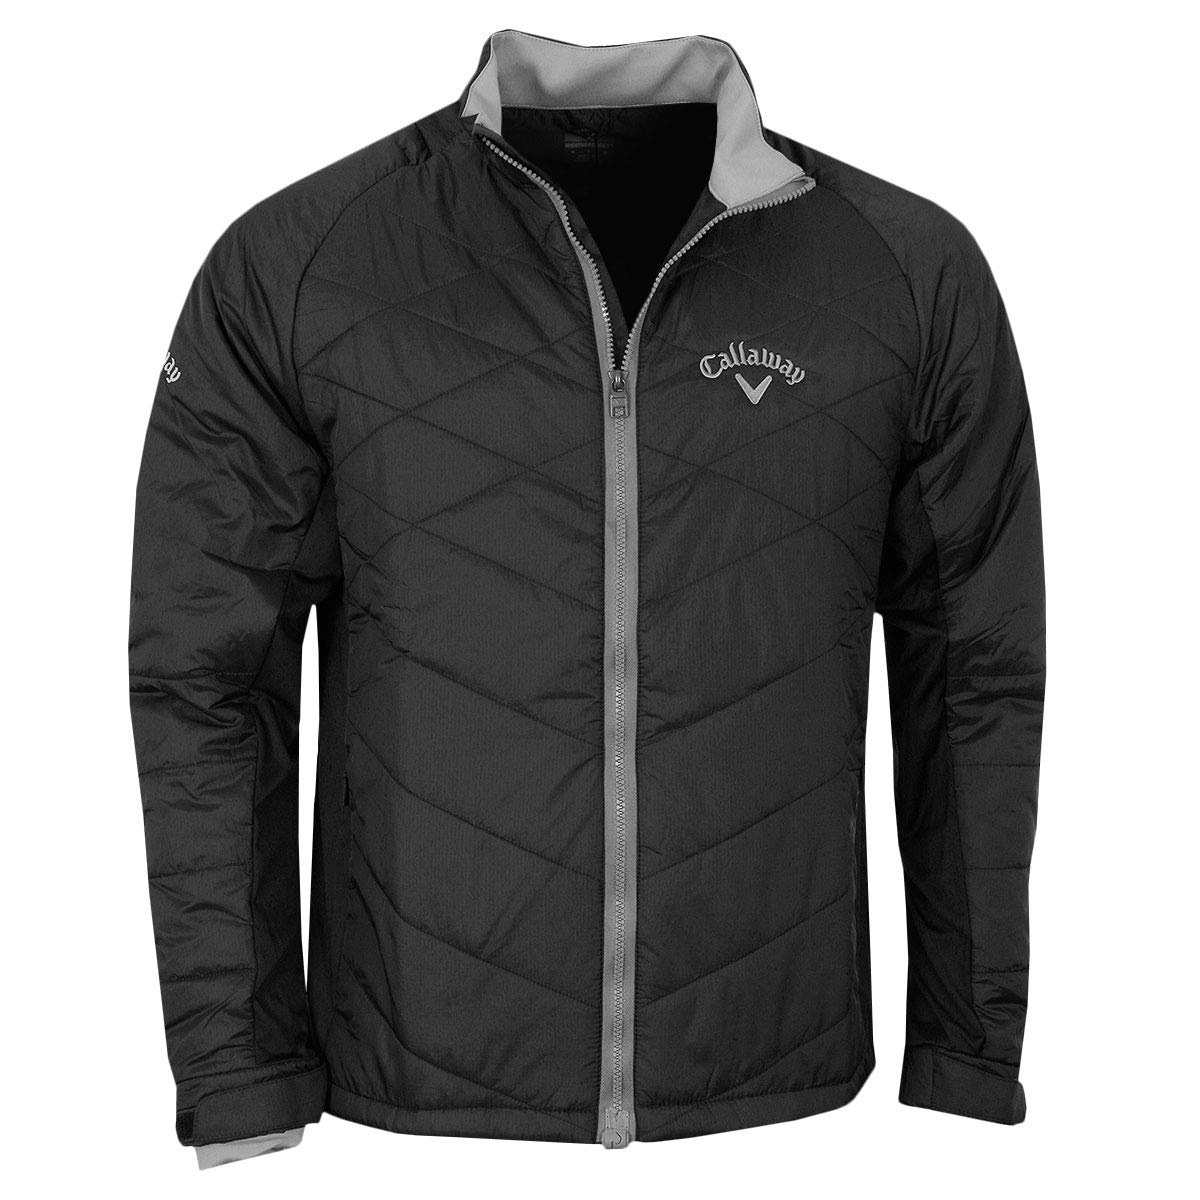 Callaway Golf 2018 Mens Full Zip Chev Thermal Puffer Jacket Caviar Large by Callaway